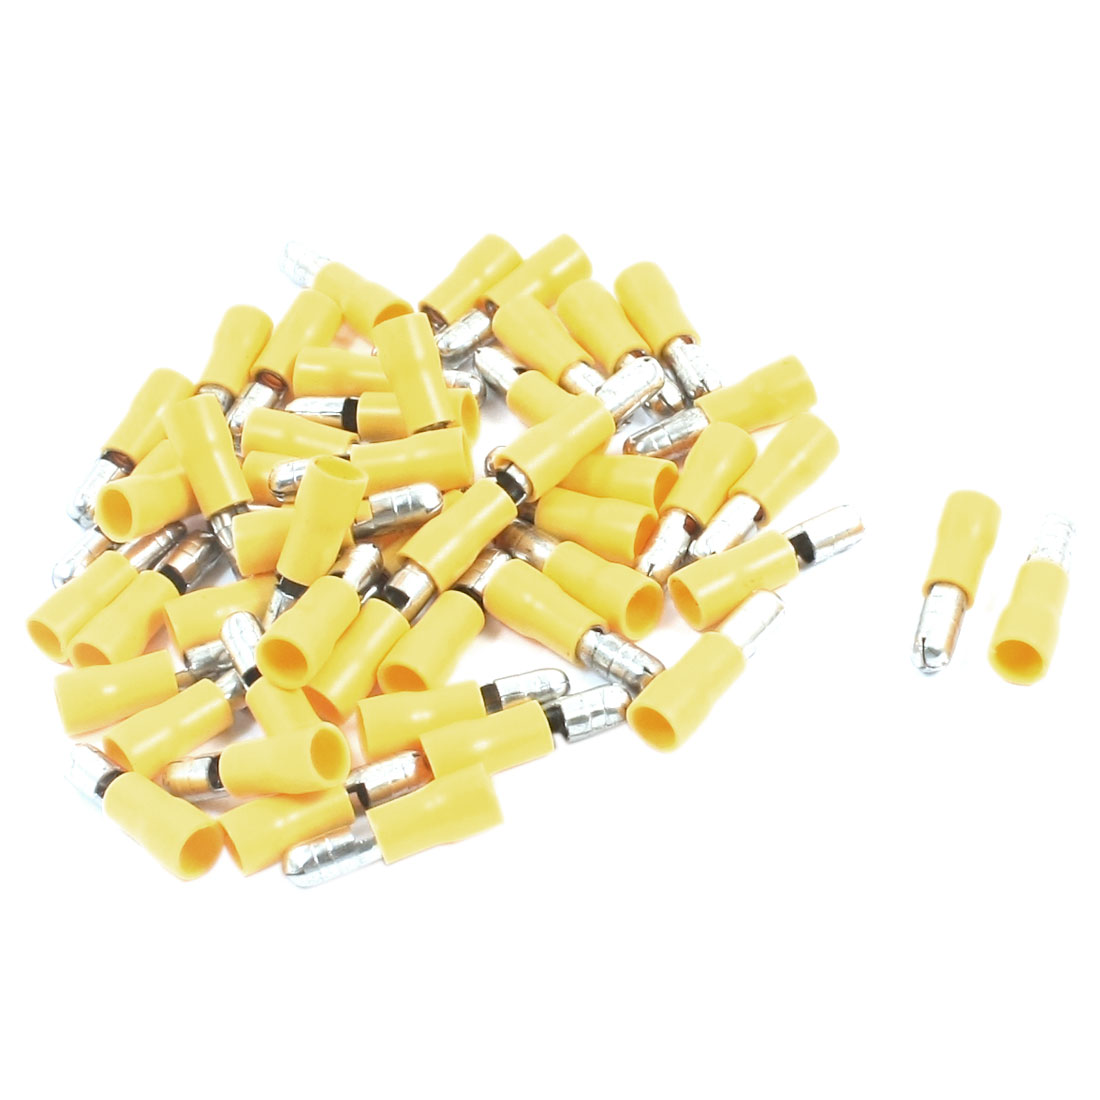 50Pcs 12-10AWG MPD5-195 Yellow PVC Sleeve Insulated 5mm Cable Terminals Crimp